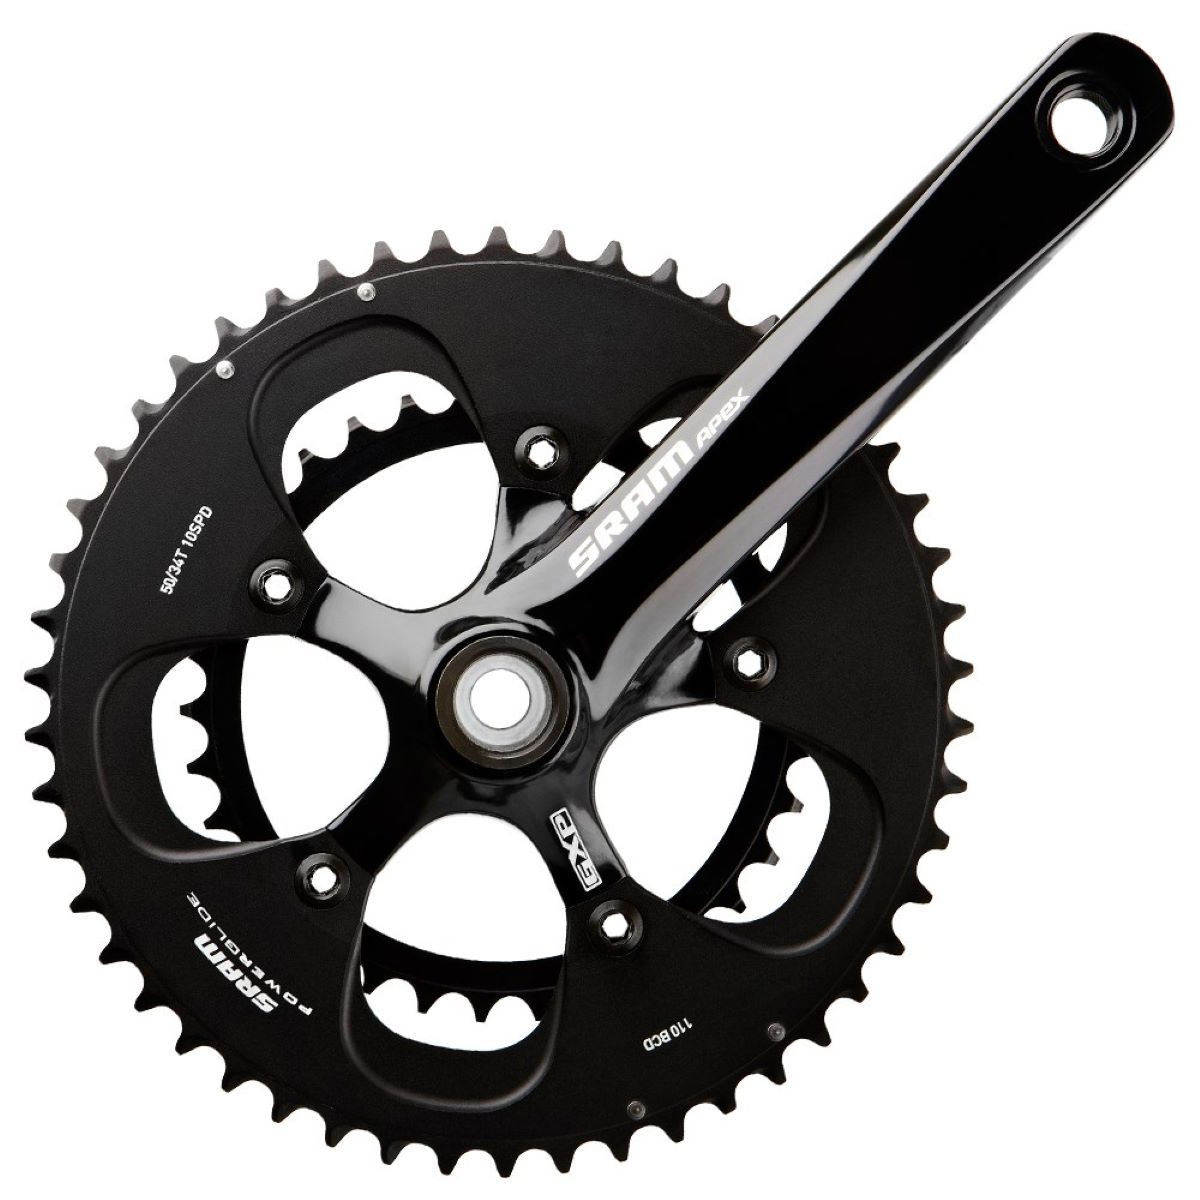 Sram Apex Compact Chainset With White Decals - 50-34t 172.5mm Black